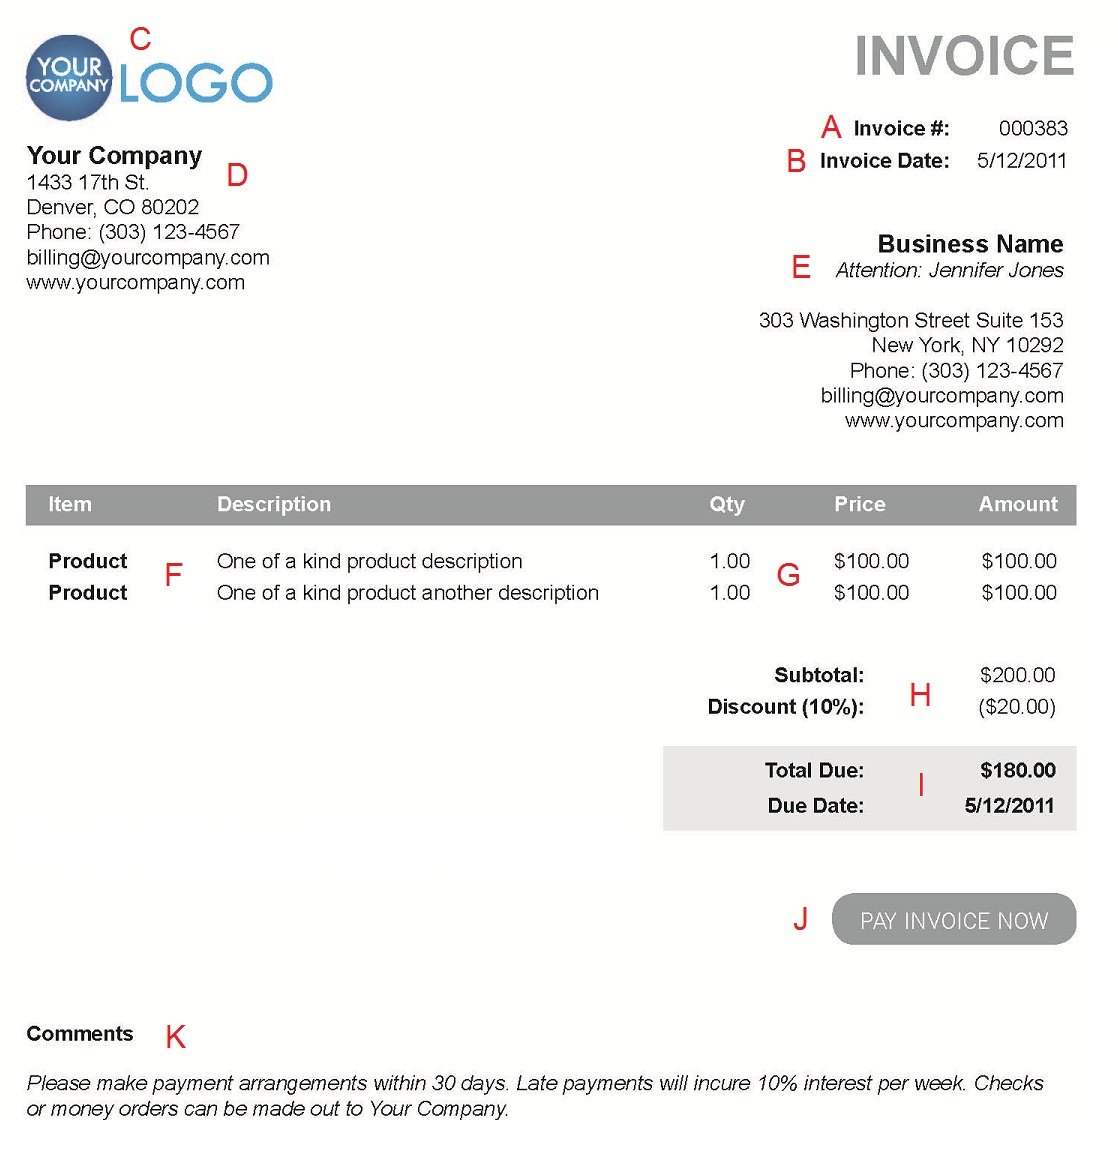 Coolmathgamesus  Outstanding The  Different Sections Of An Electronic Payment Invoice With Glamorous A  With Extraordinary Atm Receipt Also Portable Receipt Printer In Addition Receipt Printer For Ipad And Receipte As Well As Word Receipt Template Additionally Gmail Request Read Receipt From Paysimplecom With Coolmathgamesus  Glamorous The  Different Sections Of An Electronic Payment Invoice With Extraordinary A  And Outstanding Atm Receipt Also Portable Receipt Printer In Addition Receipt Printer For Ipad From Paysimplecom